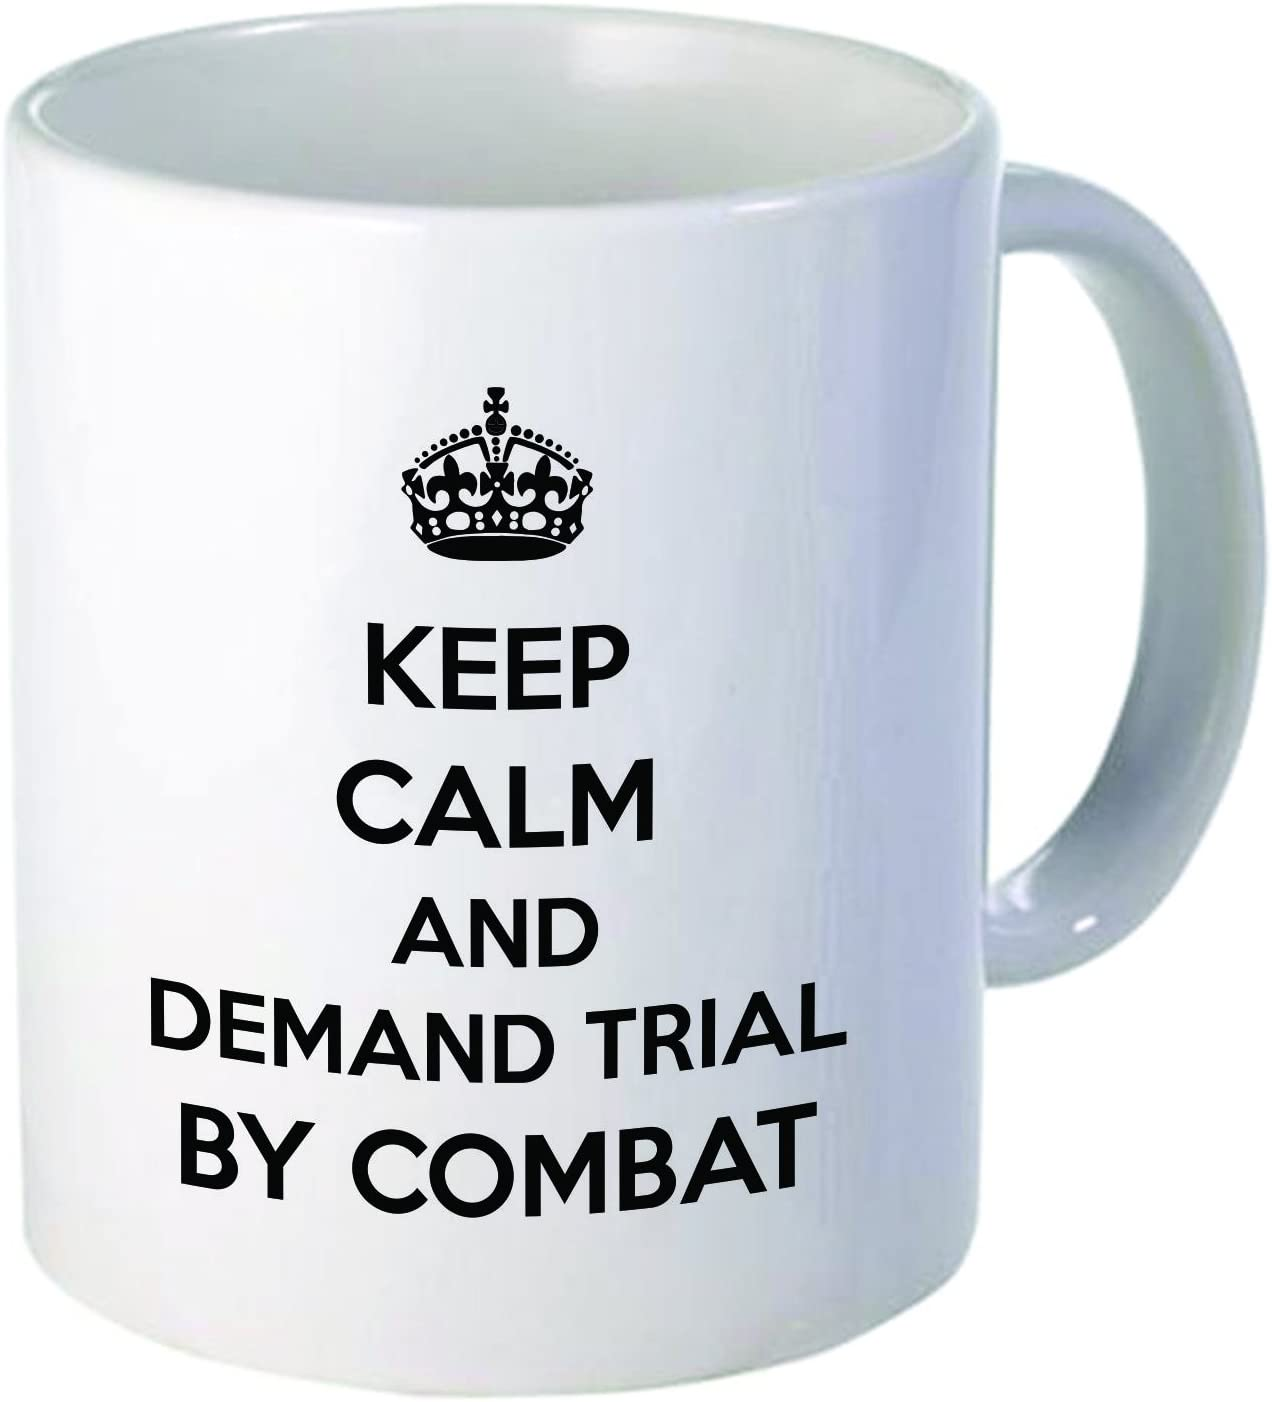 "Funny""Keep calm and demand trial by combat"", 11OZ Coffee Mug Novelty, Office, Job. By Aviento"